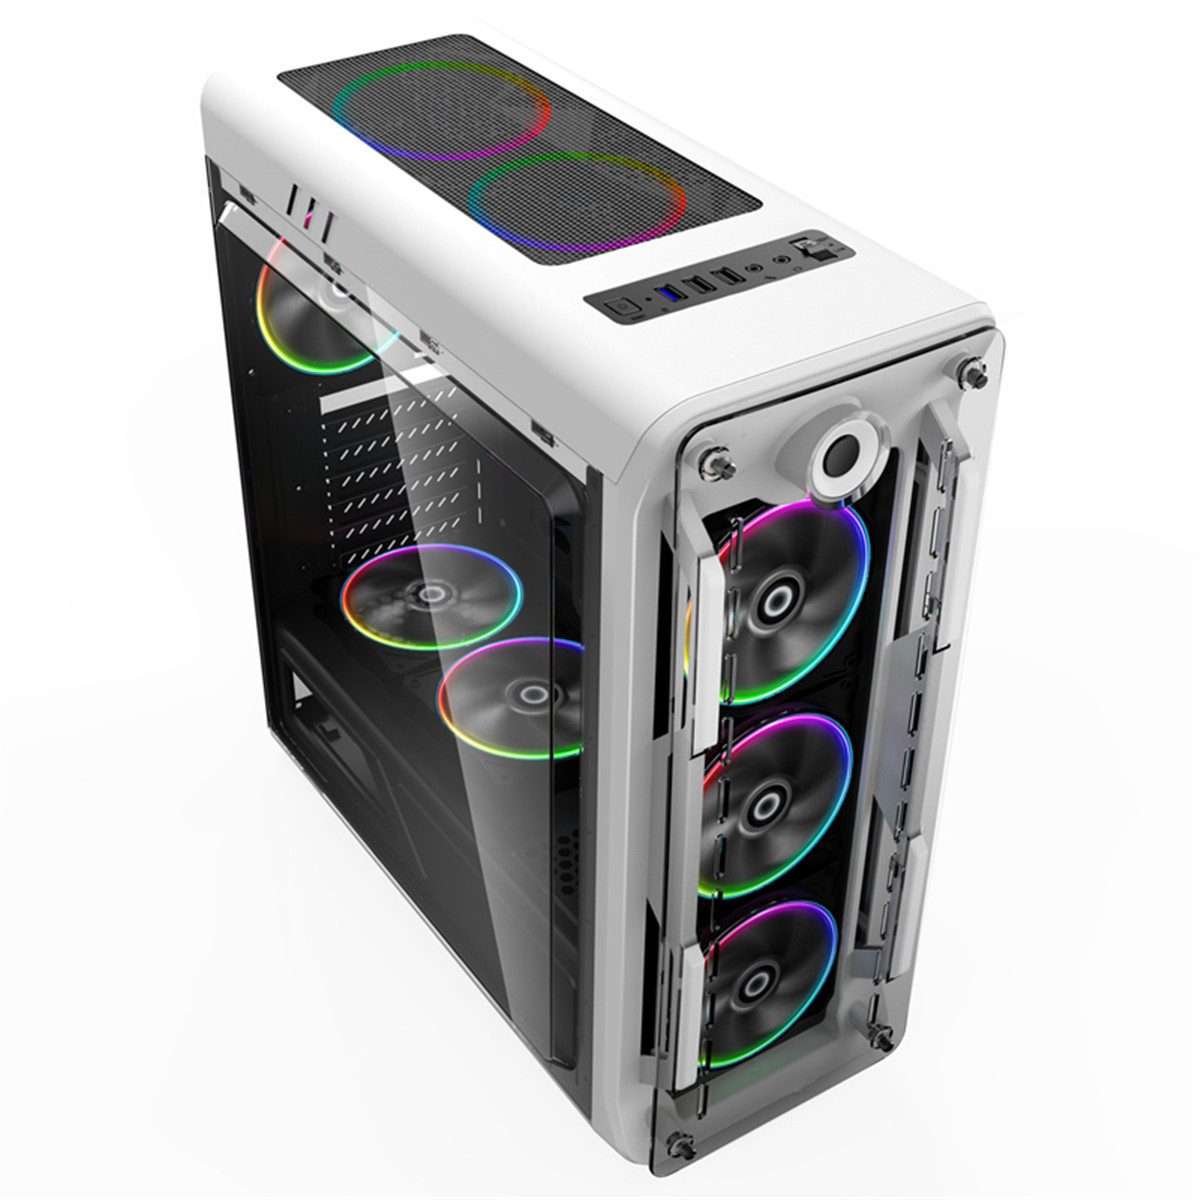 2020 New Computer Case Support ATX/Micro ATX Motherboard USB3.0 PC Case Fast Heat Dissipation Can Turn 8 Fans Upgraded Version